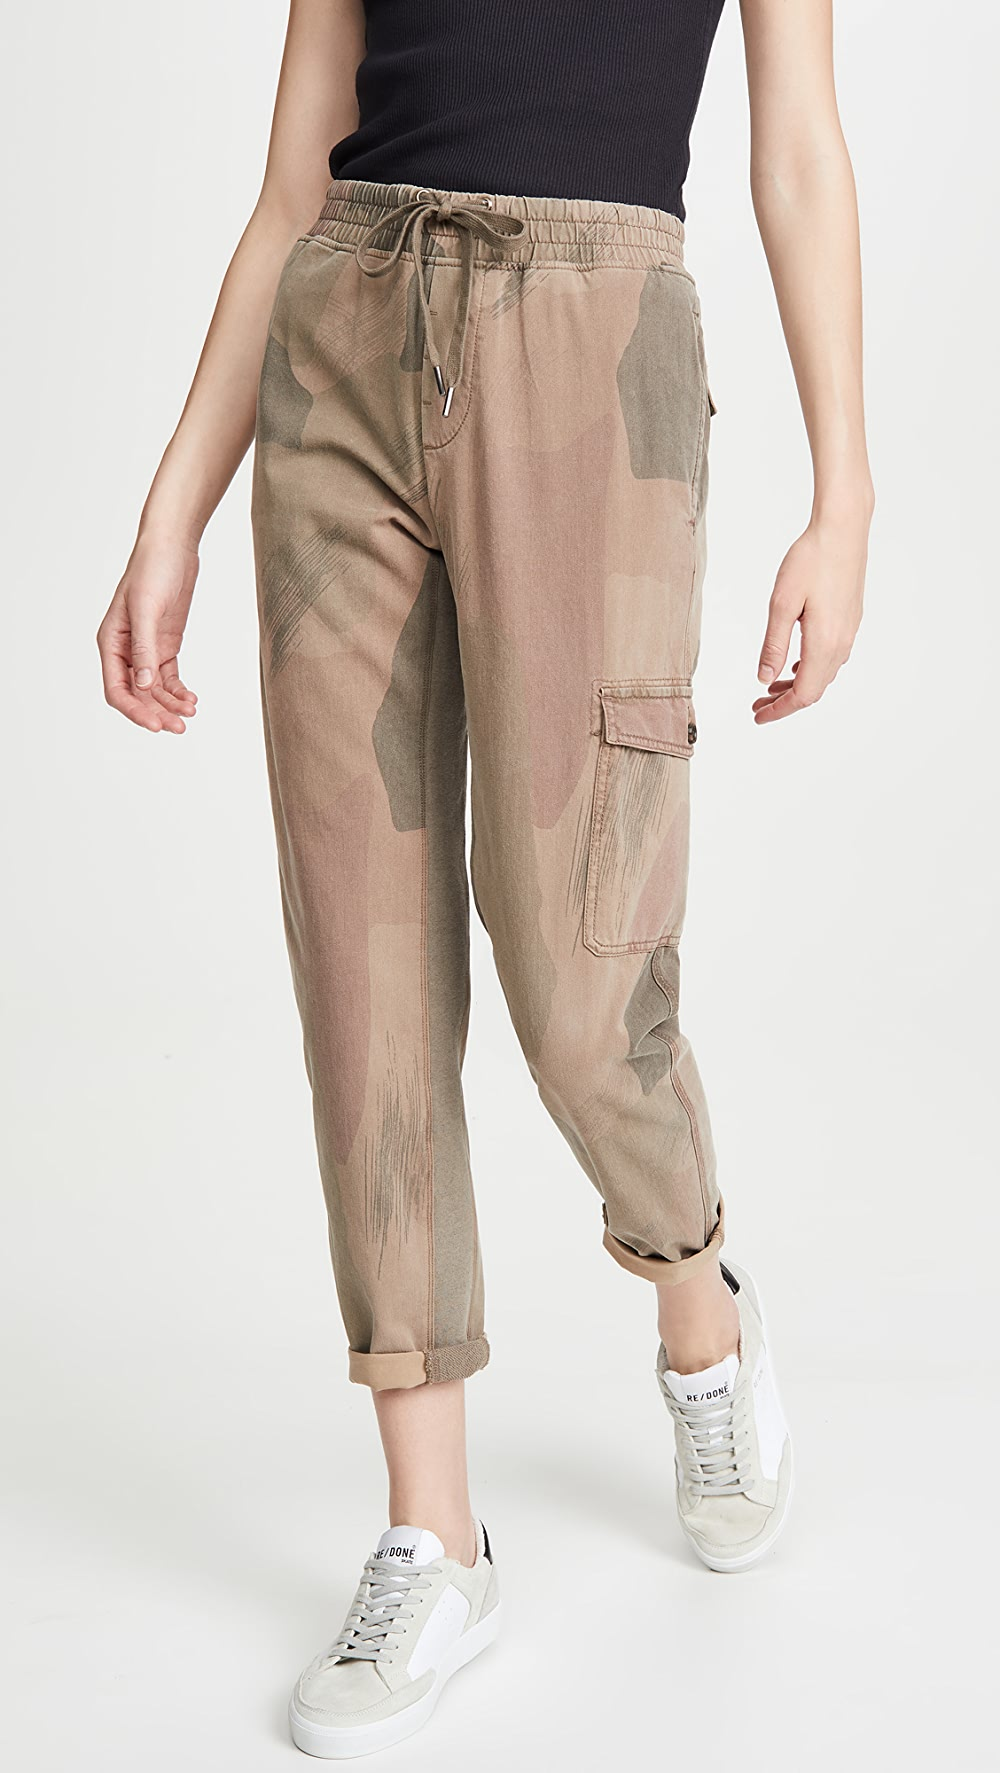 Independent James Perse - Camo Cargo Pants Durable Modeling